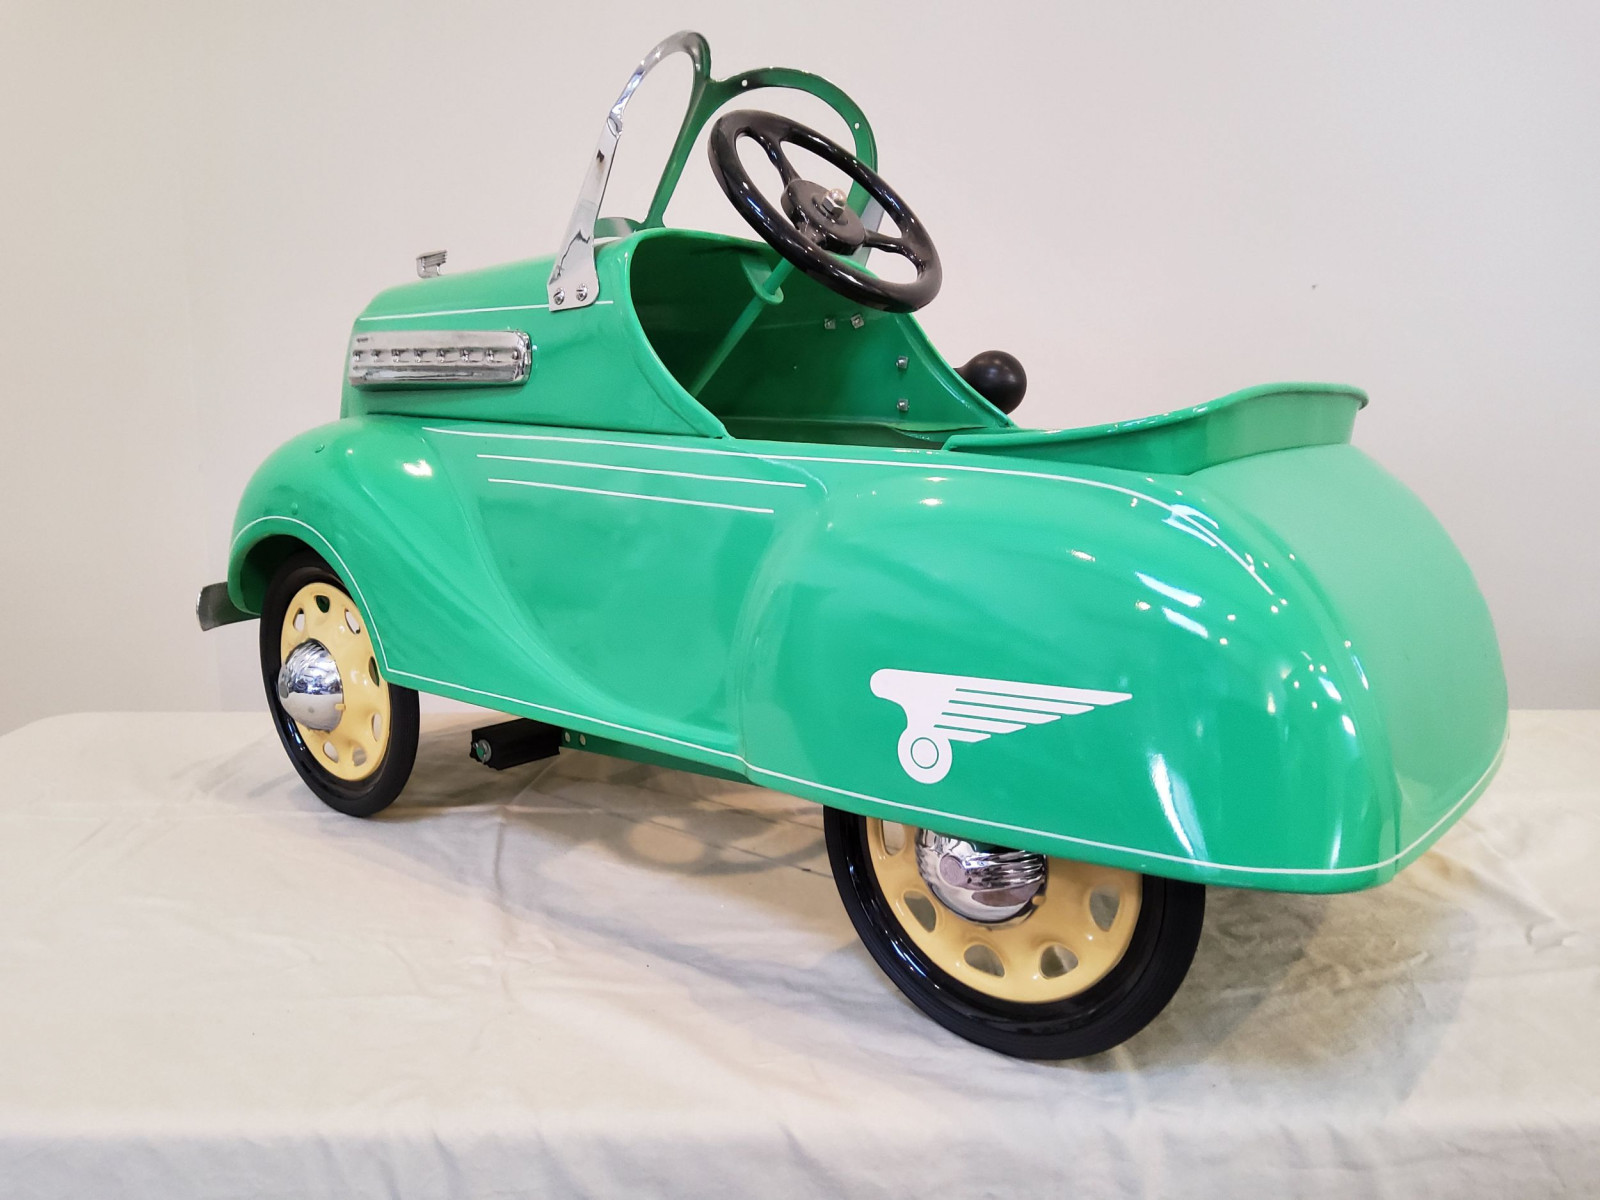 1939 Steelcraft Pedal Car - Image 4